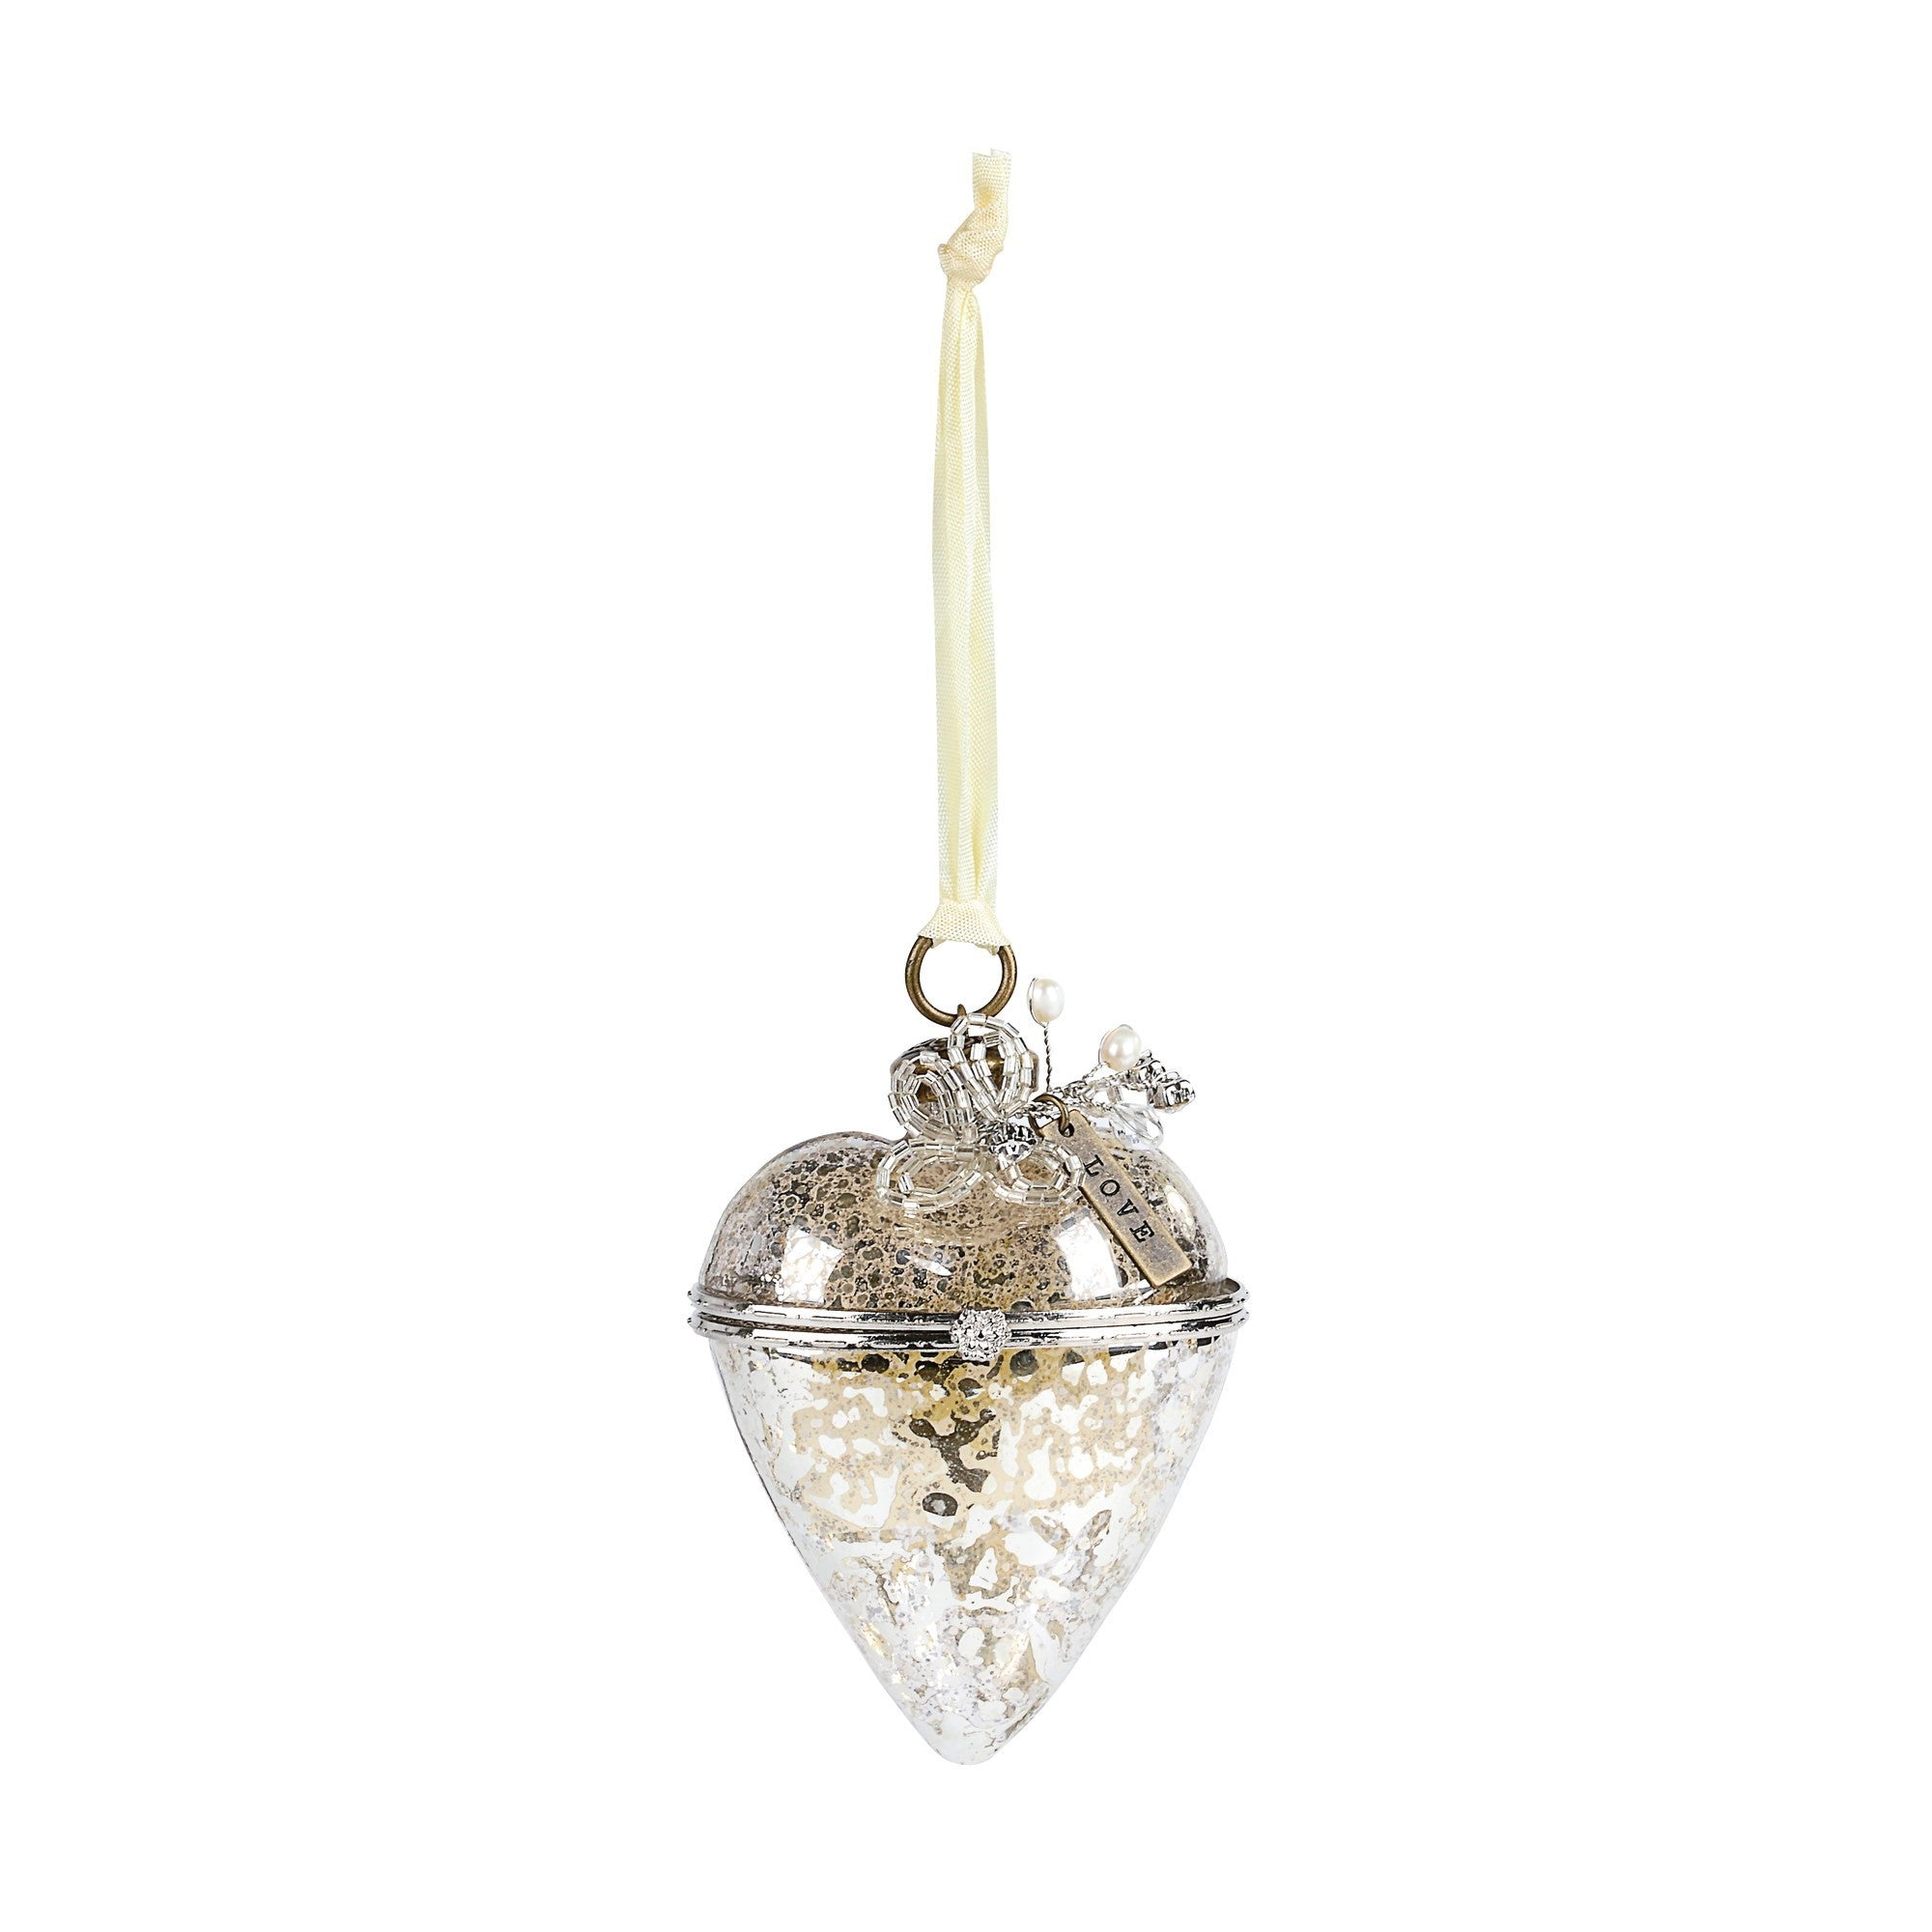 A Gilded Life Hinged Glass Heart Ornament - Love